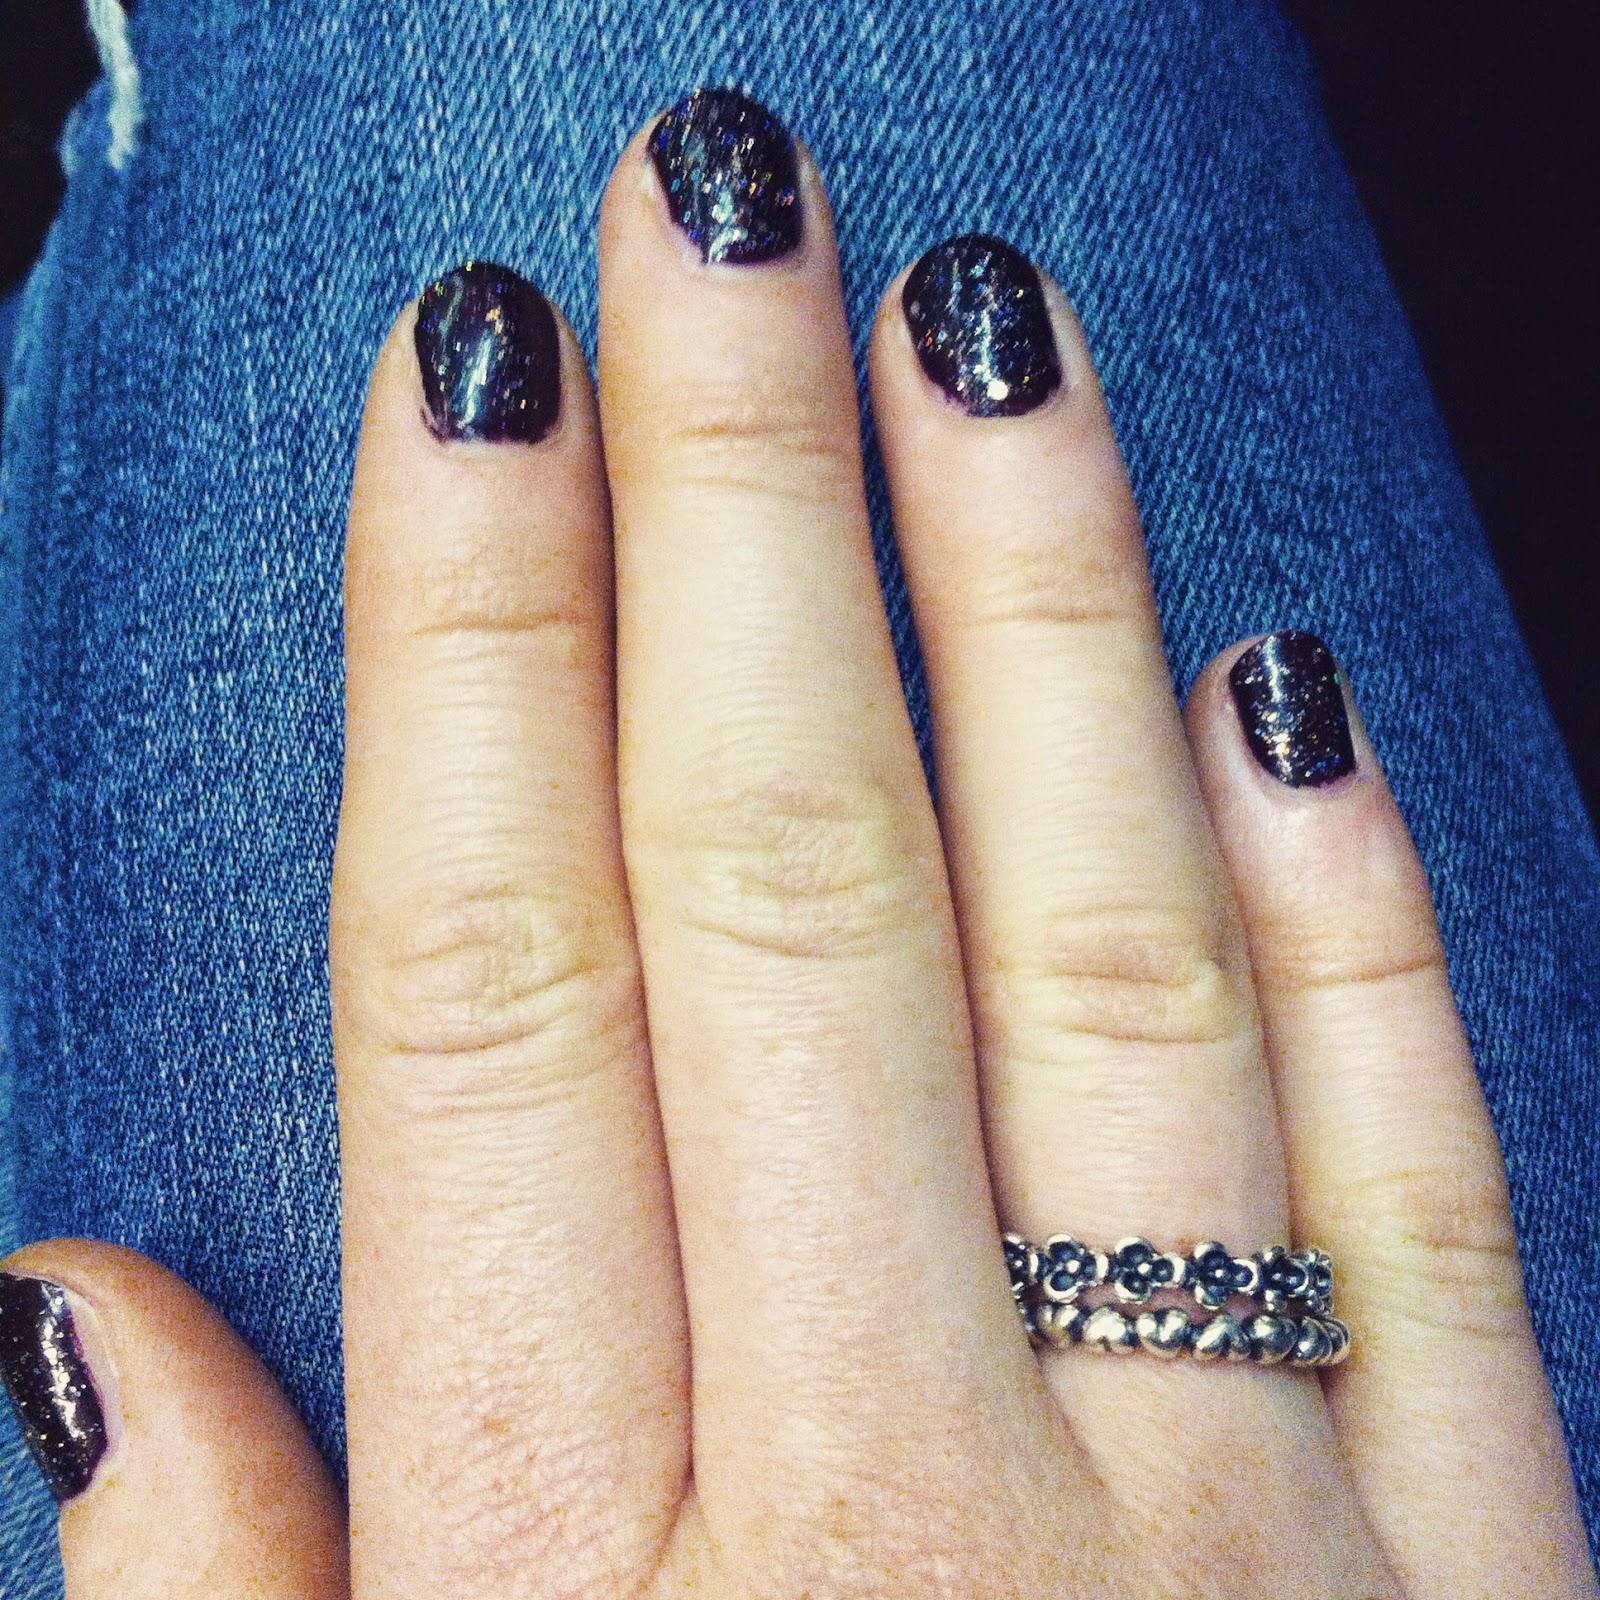 Nails Of The Day with OPI and Barry M